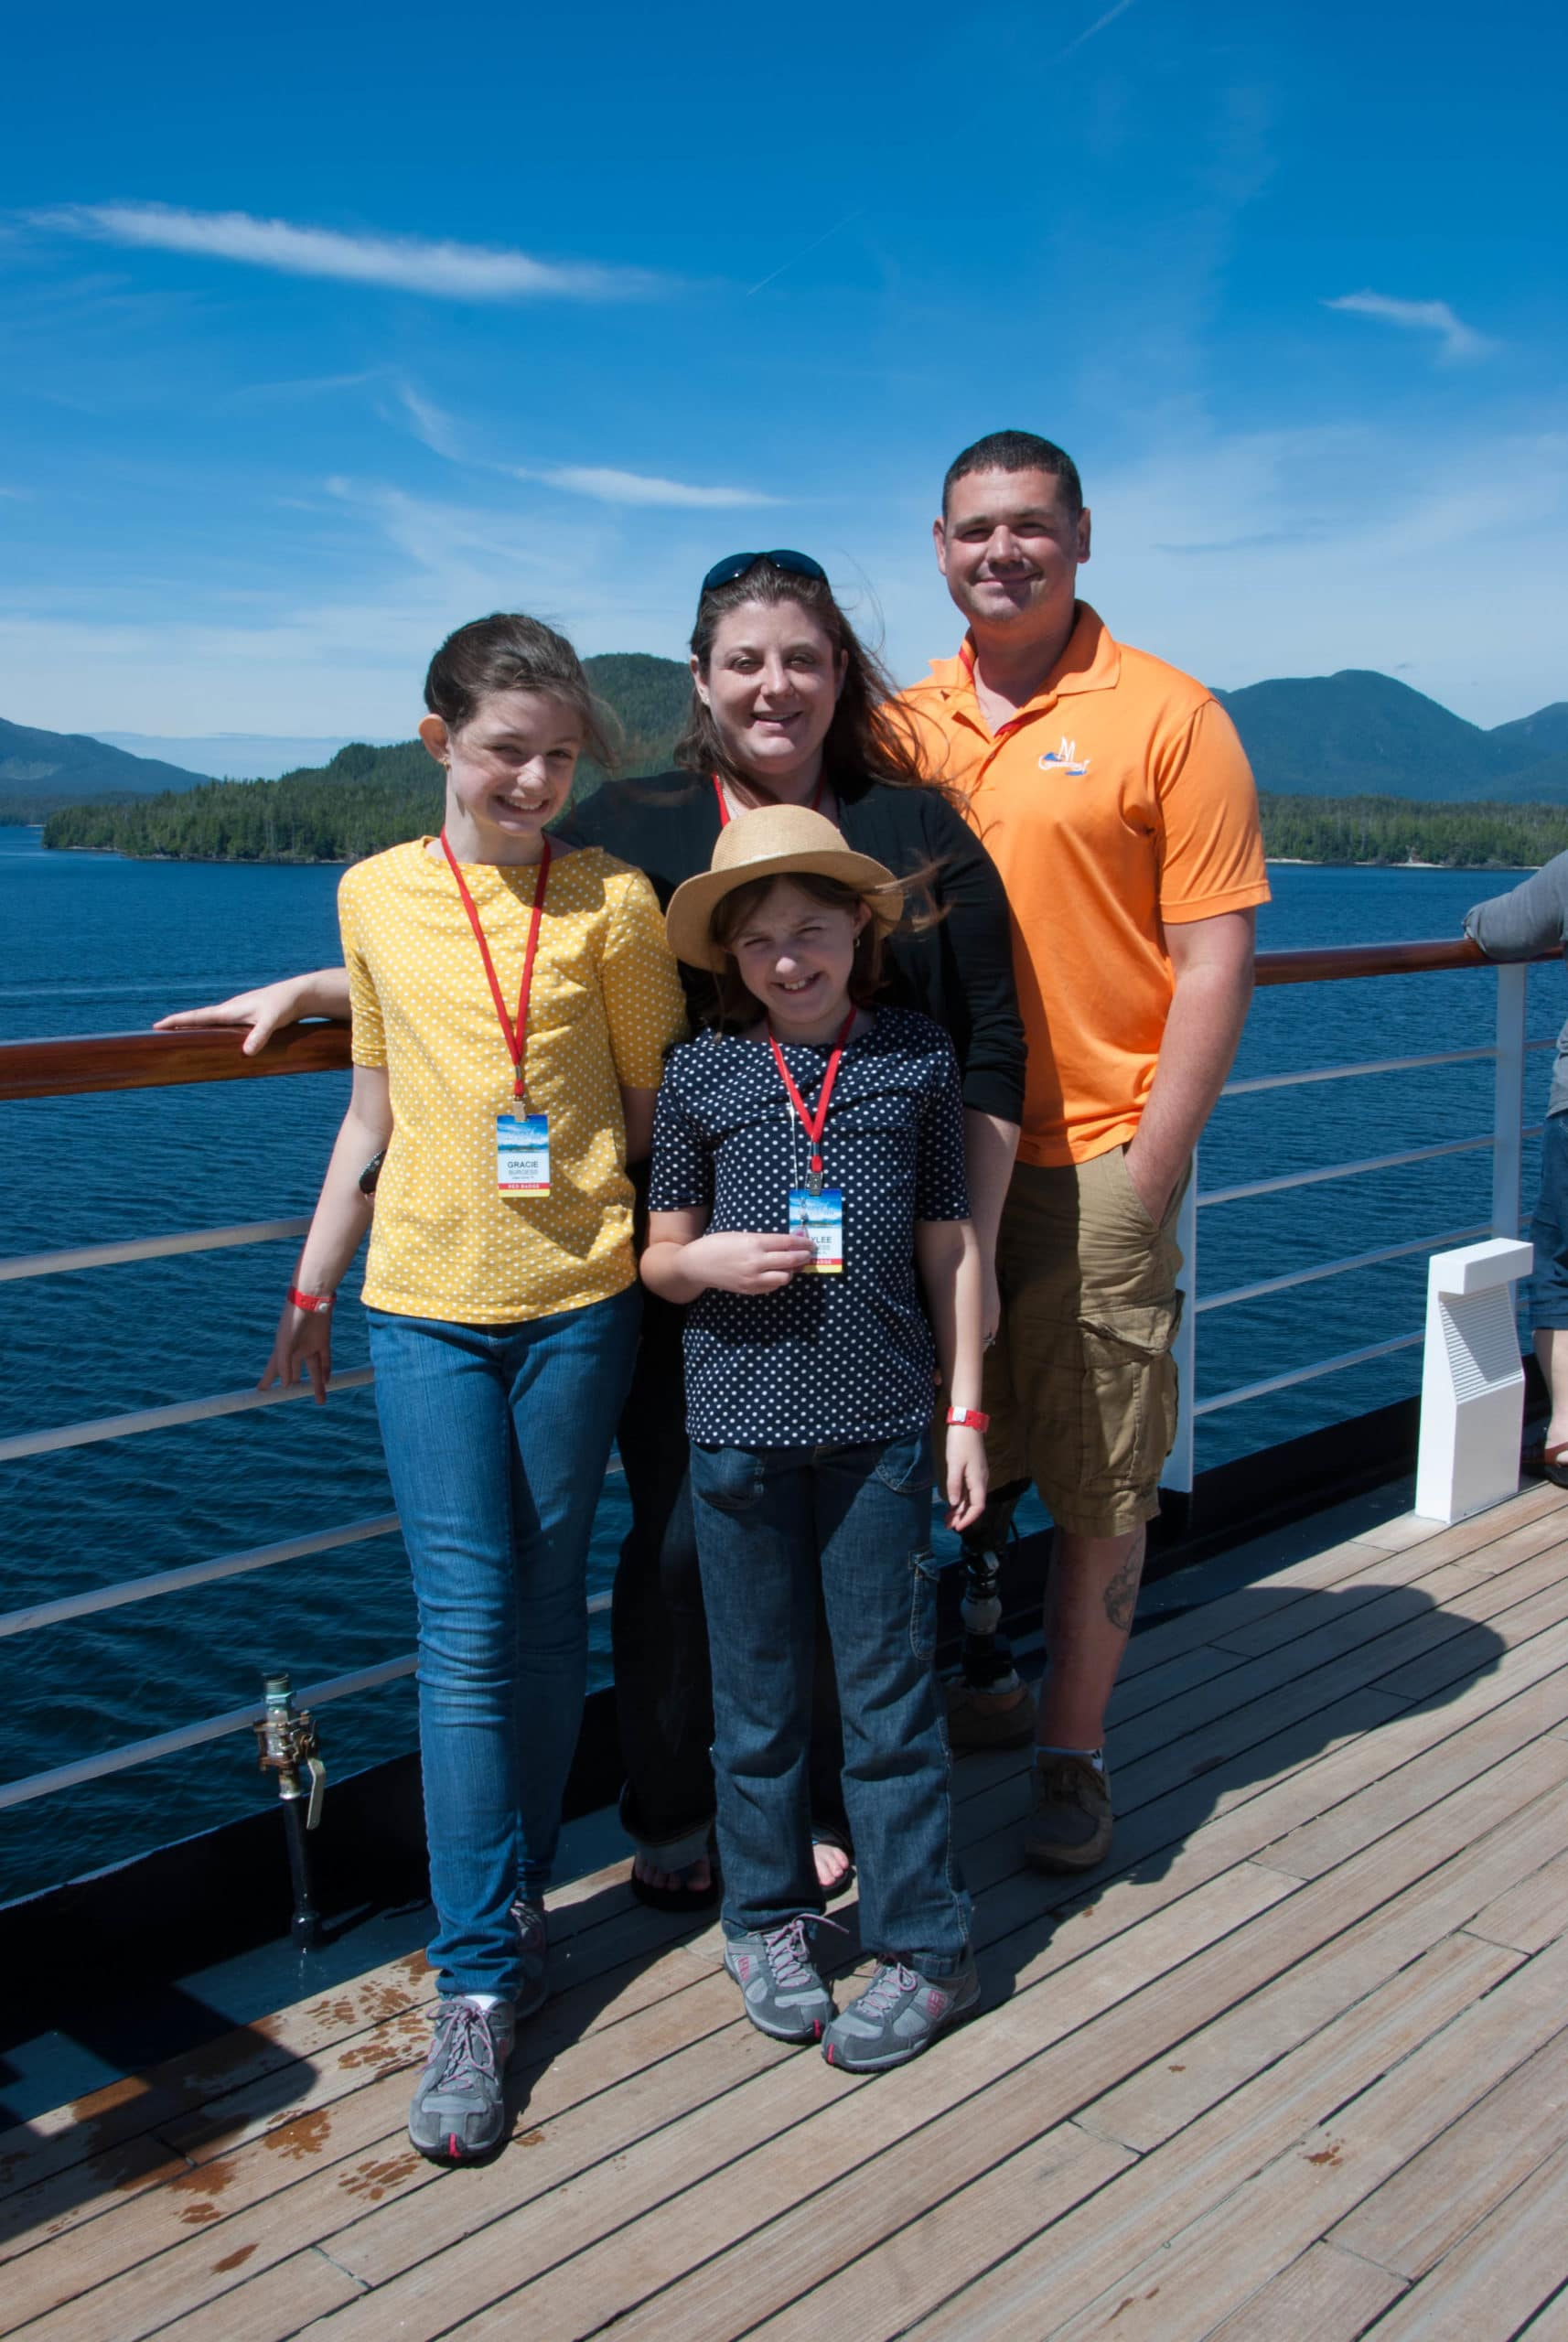 SSG Dan Burgess with his family during a Heroes Family Retreat in Alaska.